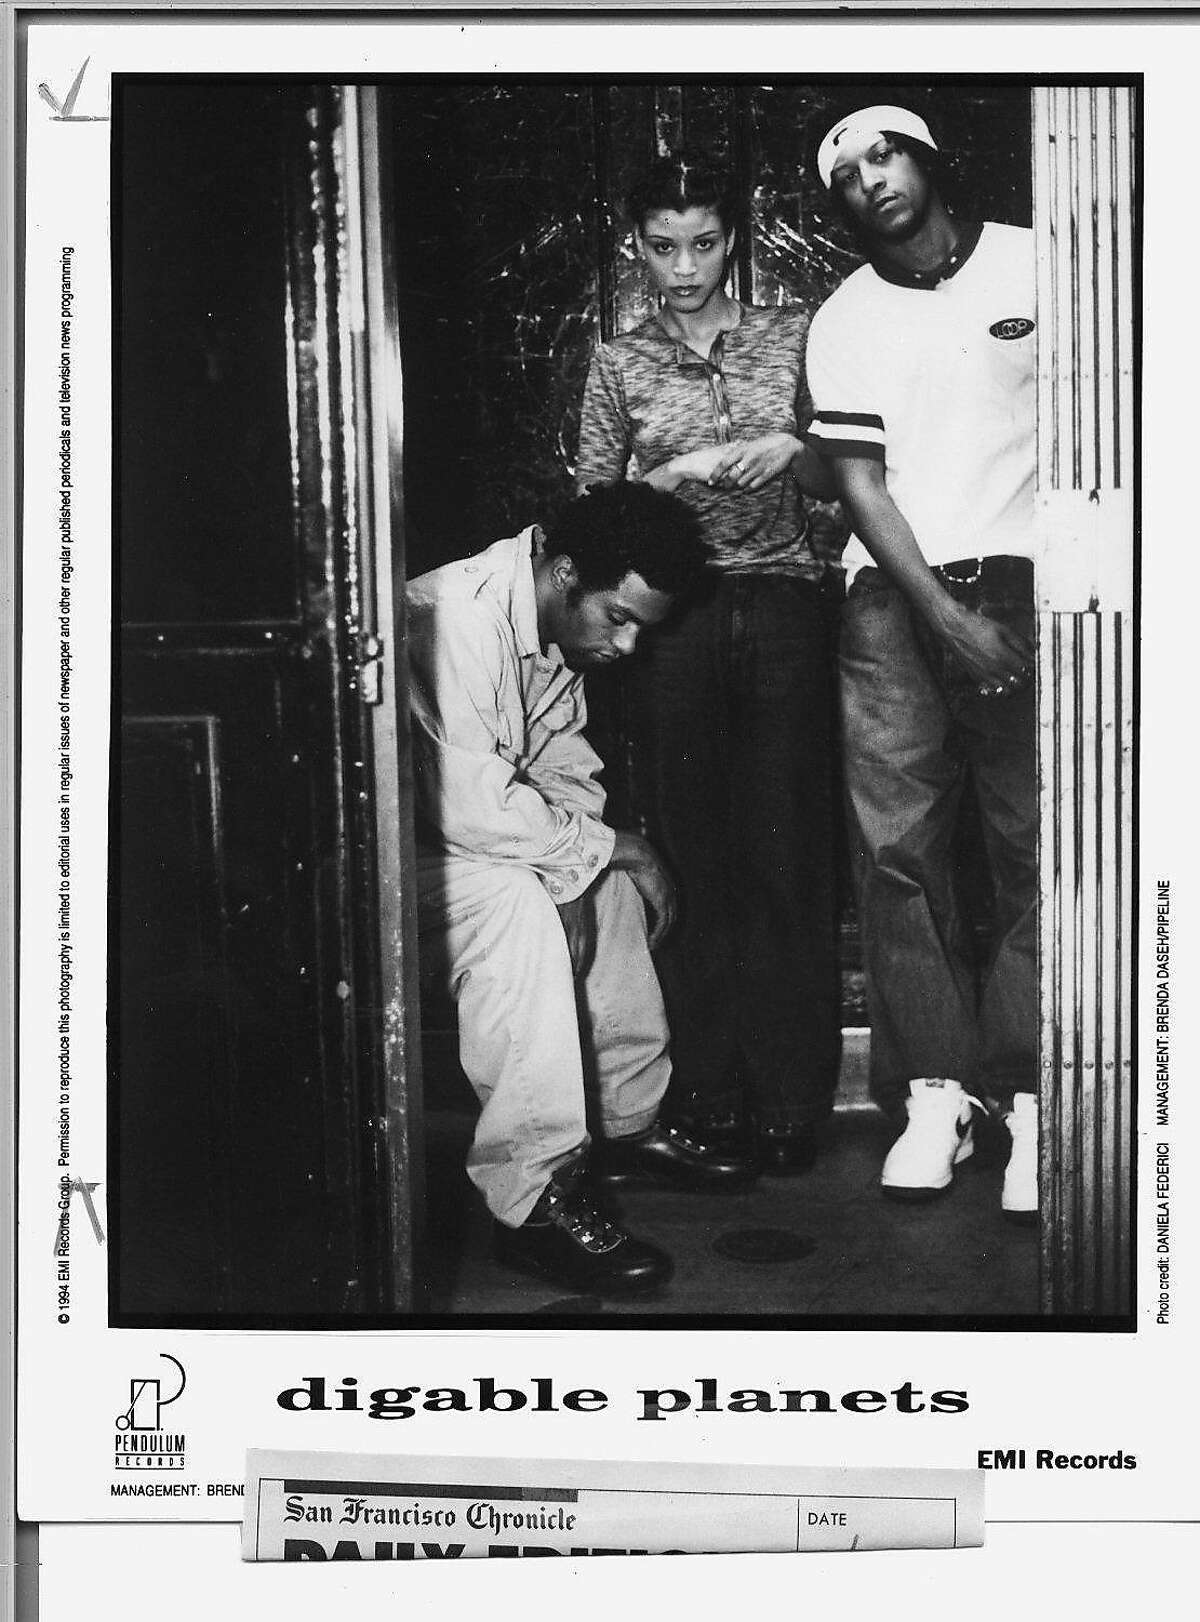 THE DIGABLE PLANETS MUSIC GROUP.